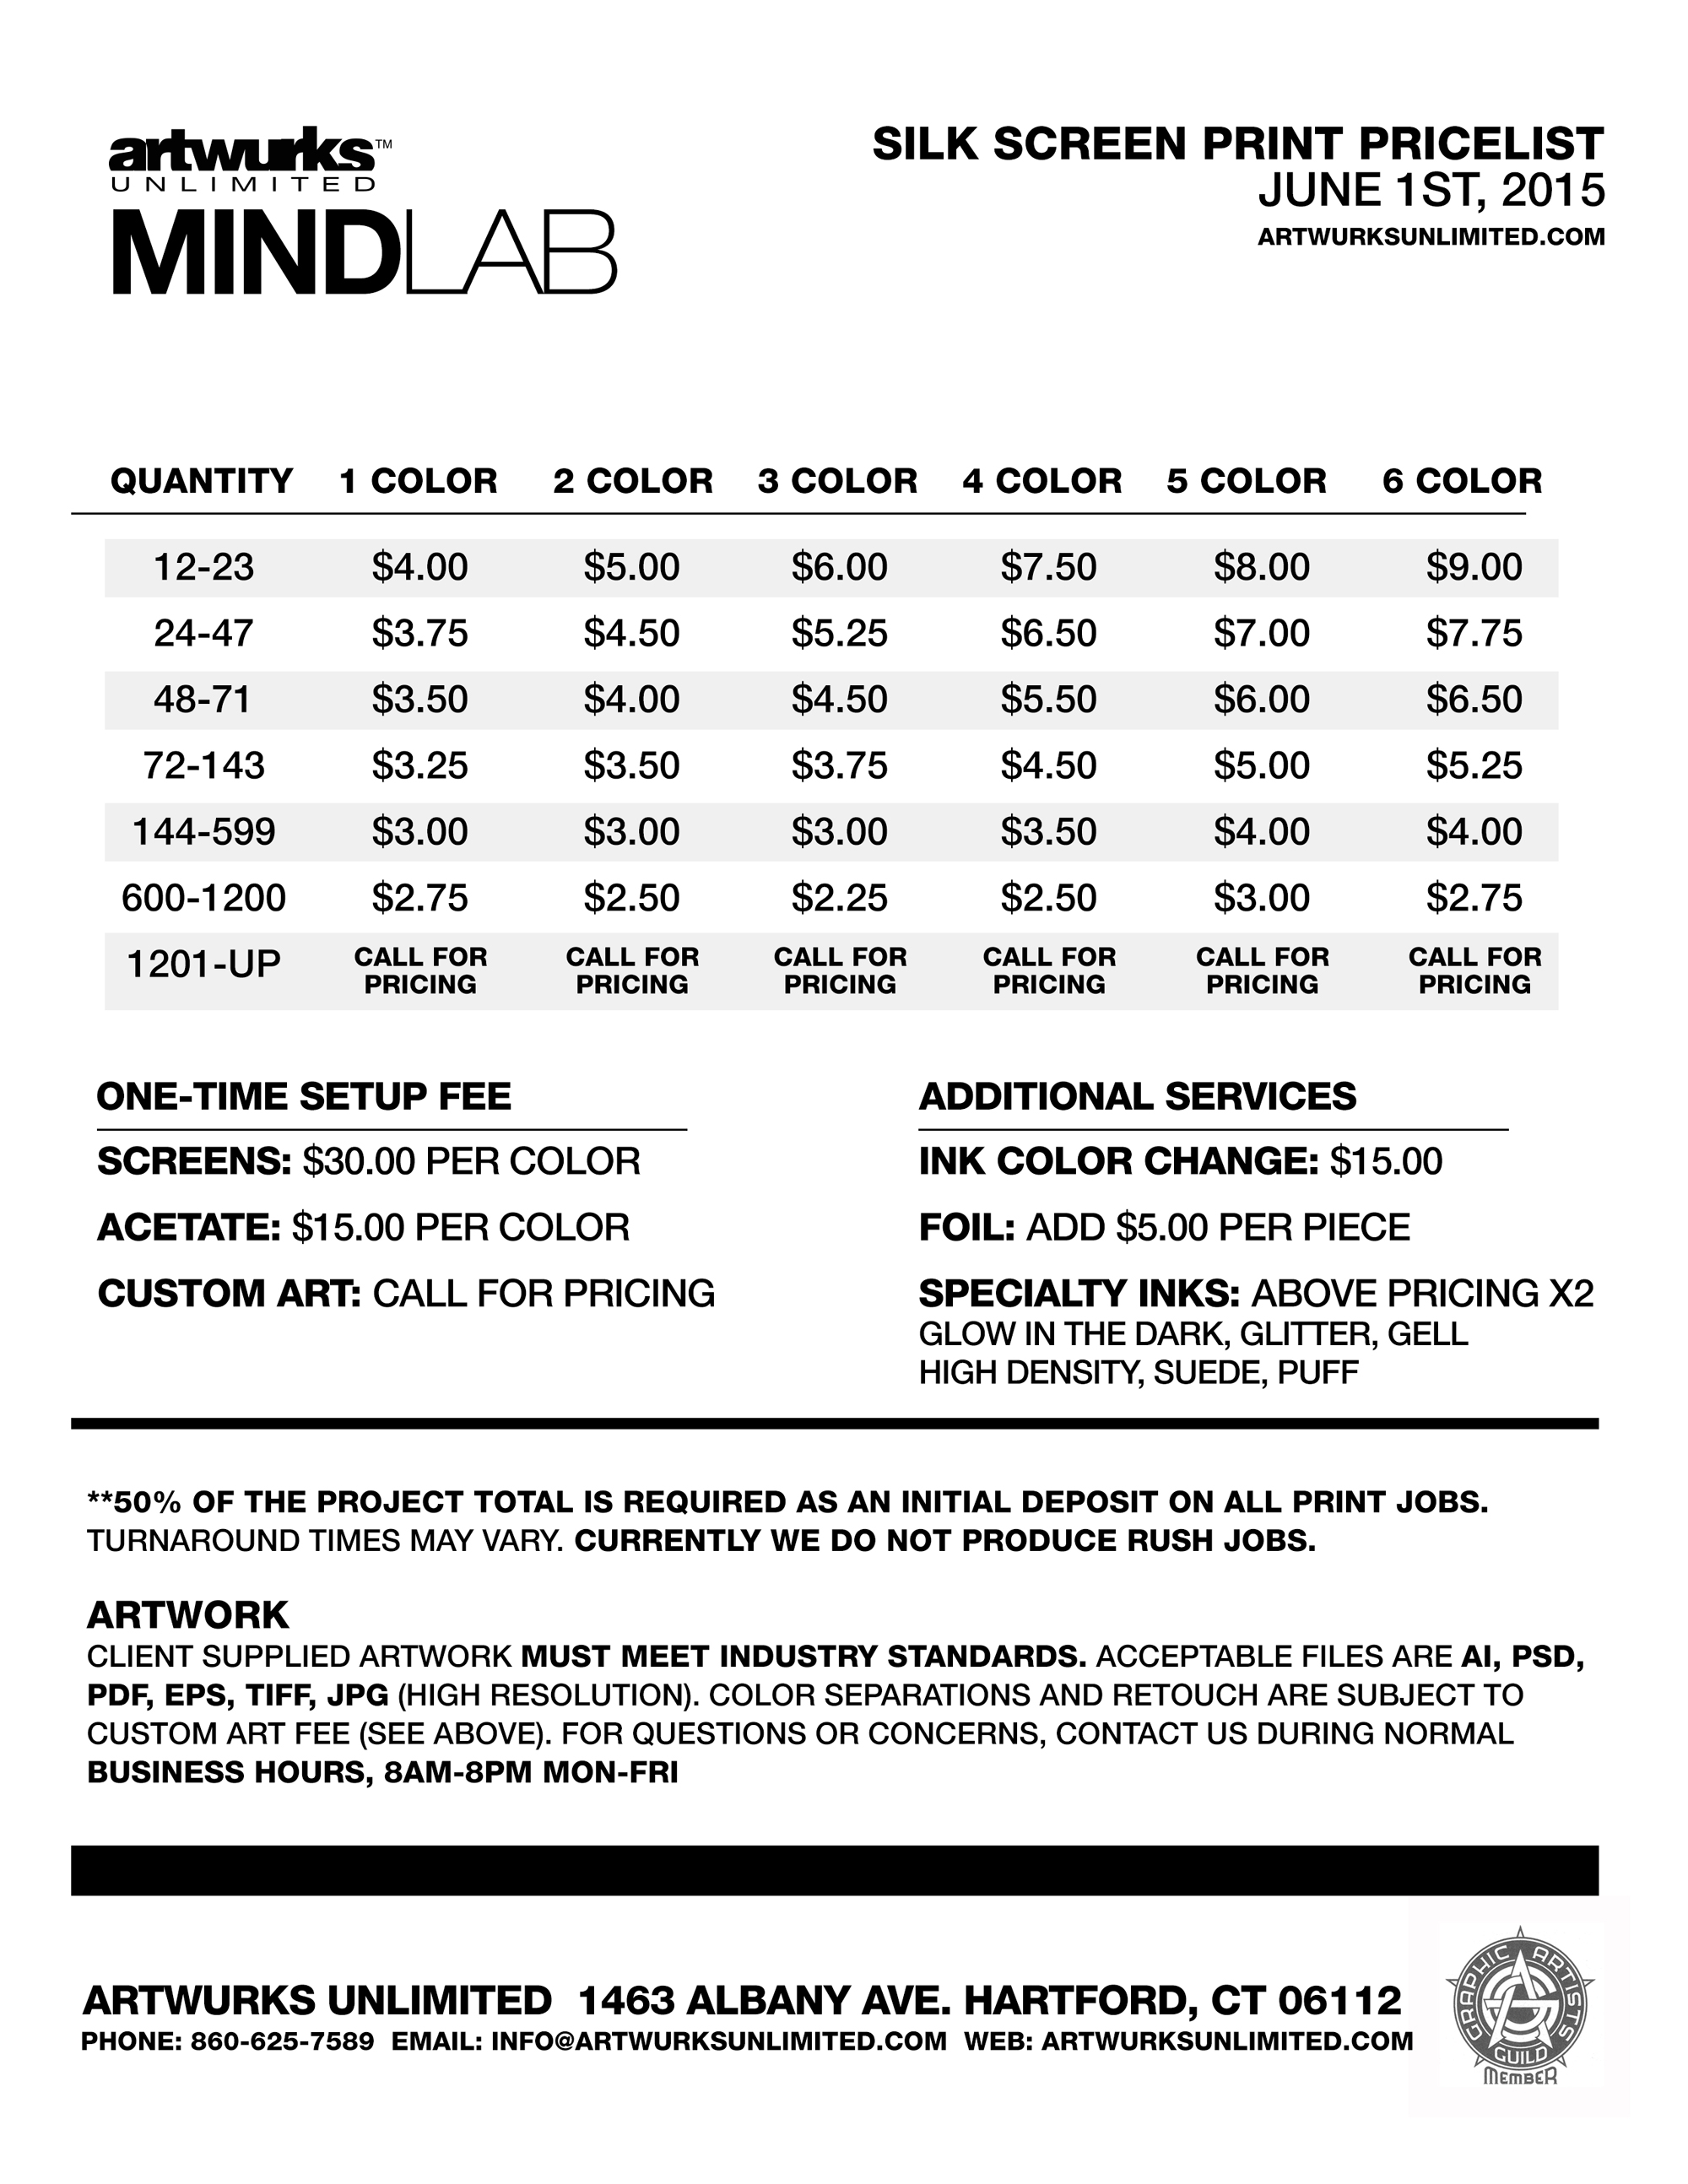 Artwurks-Unlimited-Mindlab-Silk-Screen-Pricelist-2015